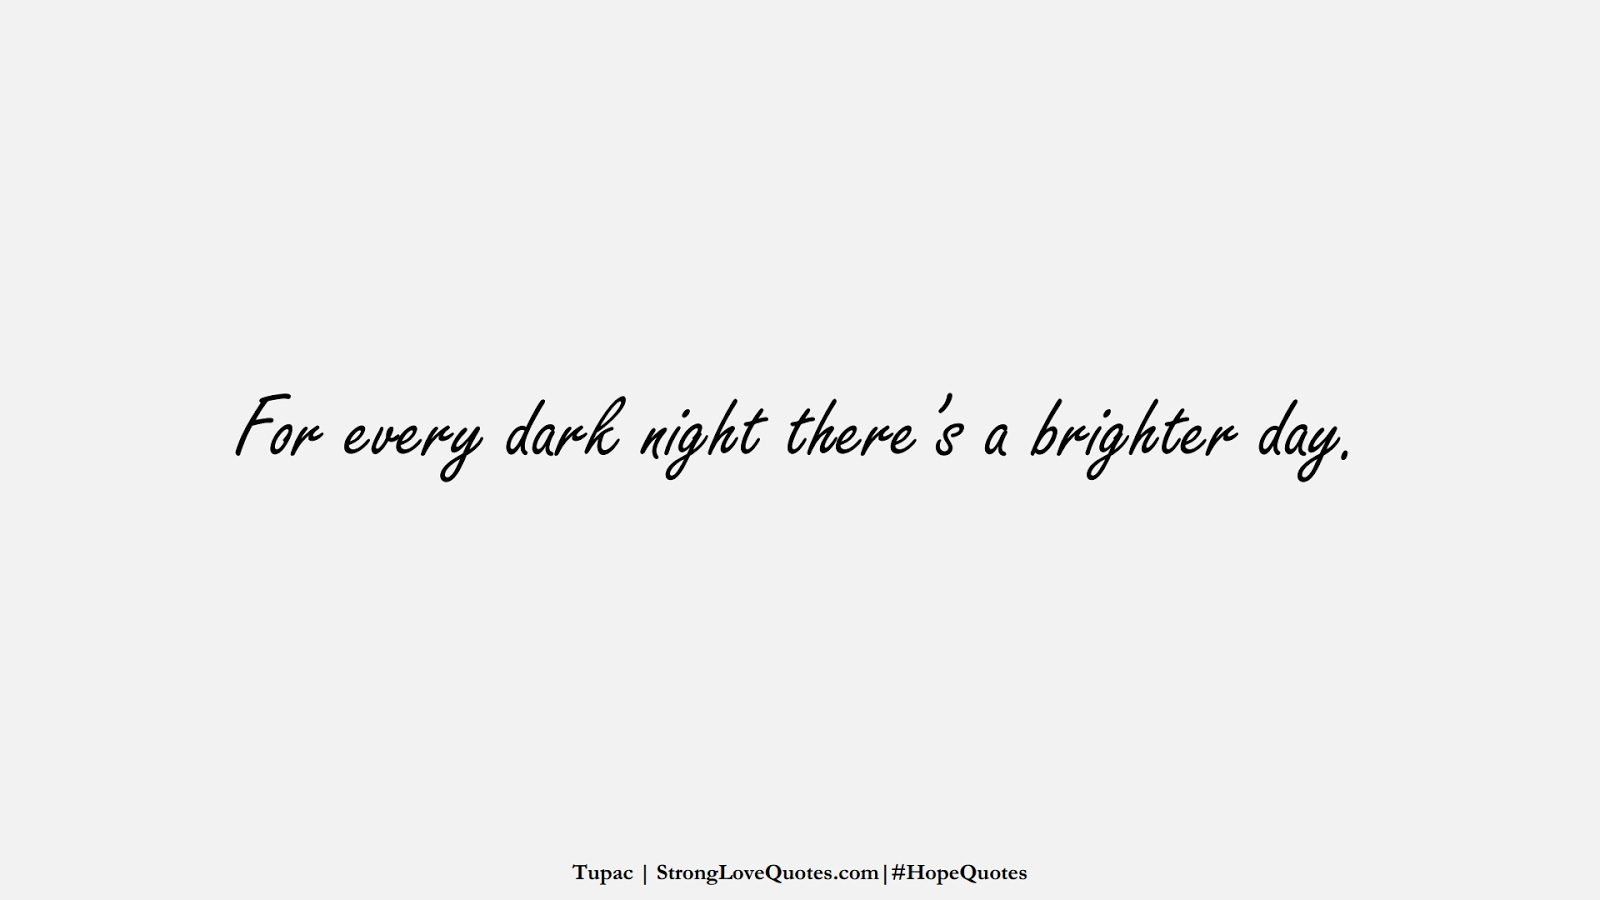 For every dark night there's a brighter day. (Tupac);  #HopeQuotes